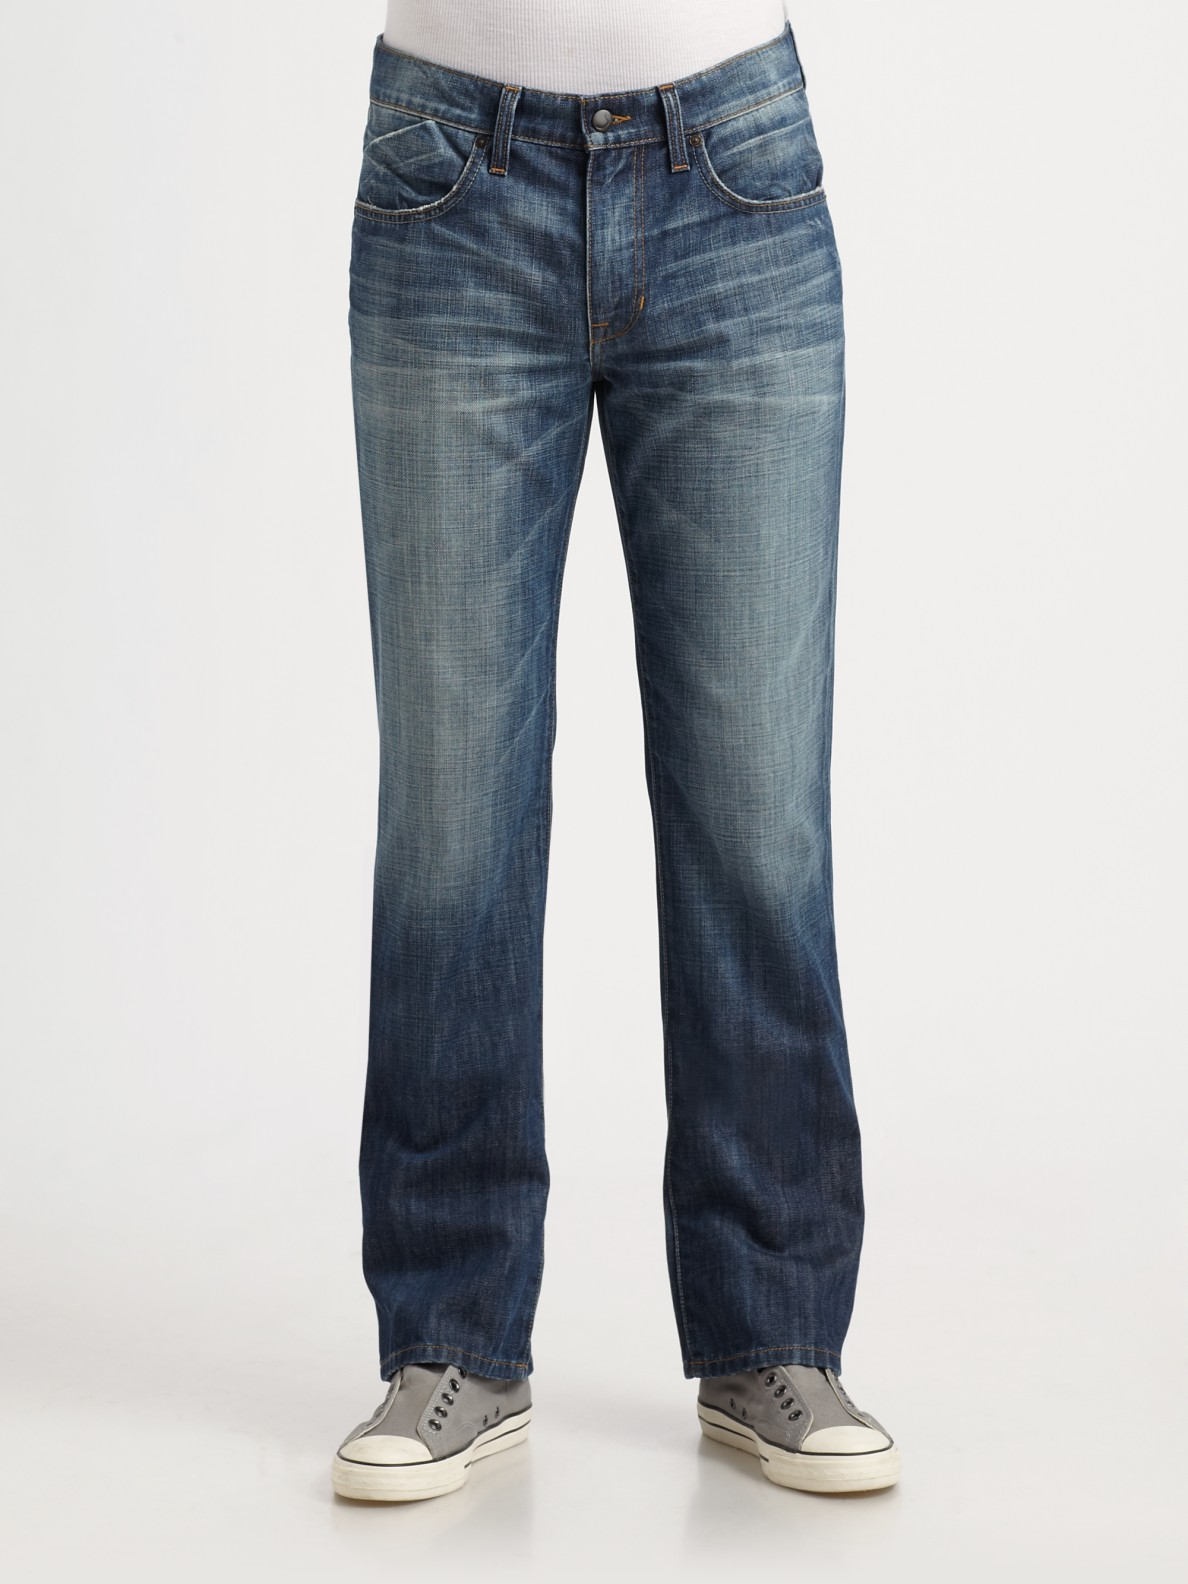 Slim Bootcut Jeans For Men